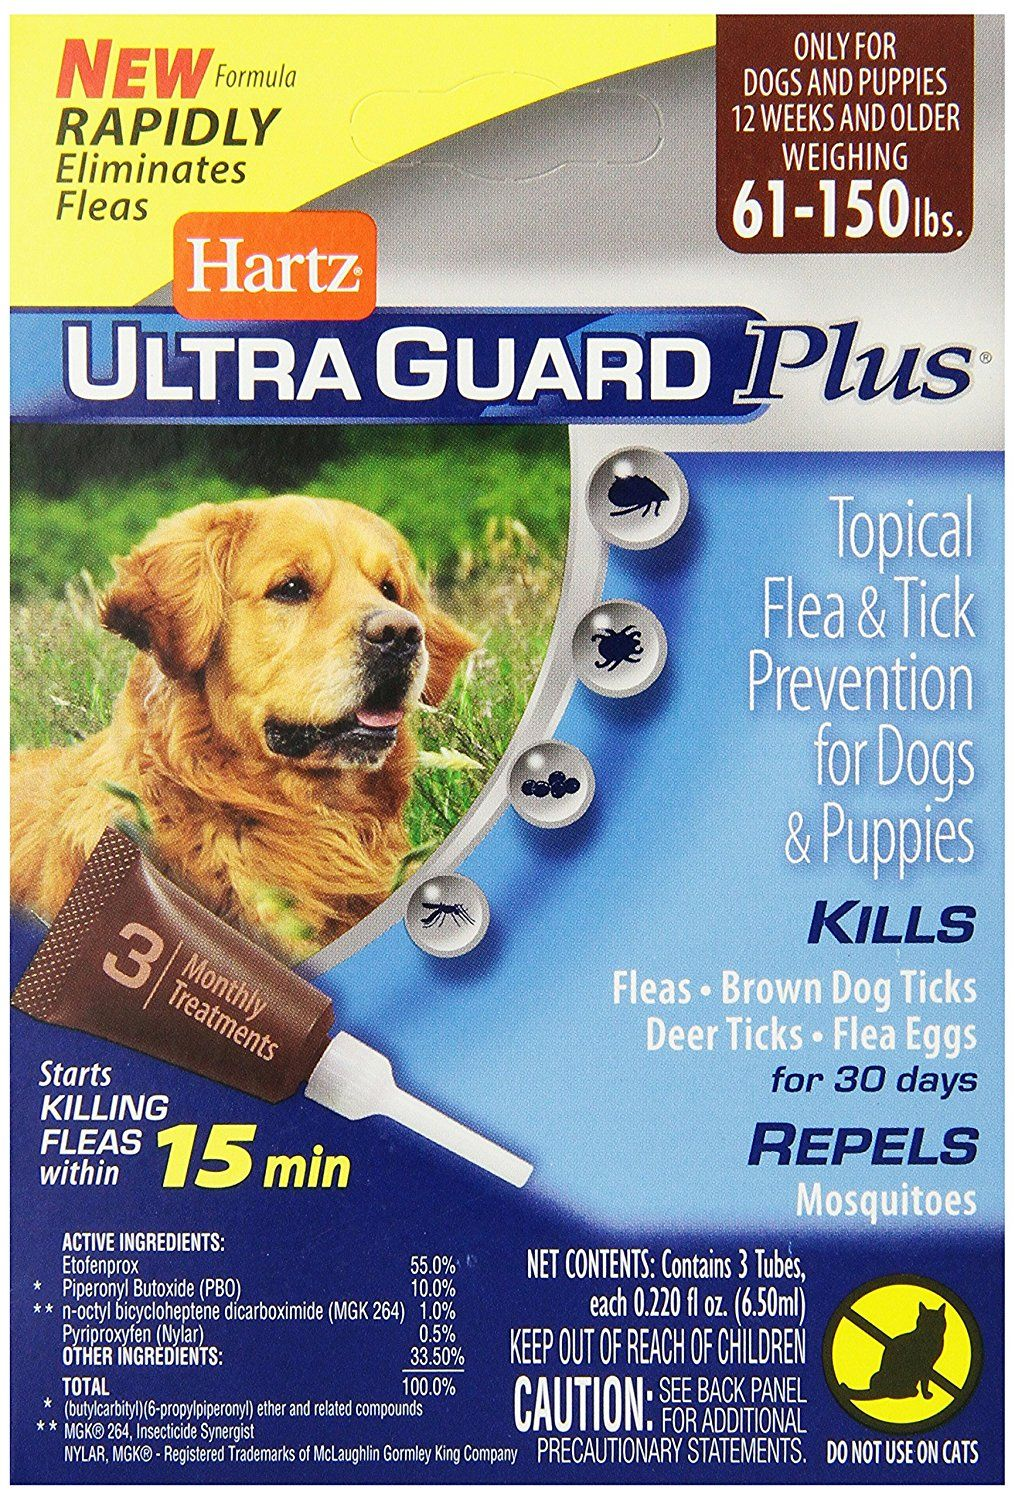 Hartz Ultraguard Flea And Tick Drops For Dogs You Can Get Additional Details At The Image Link This Is An Affil Flea Medicine For Dogs Flea And Tick Fleas